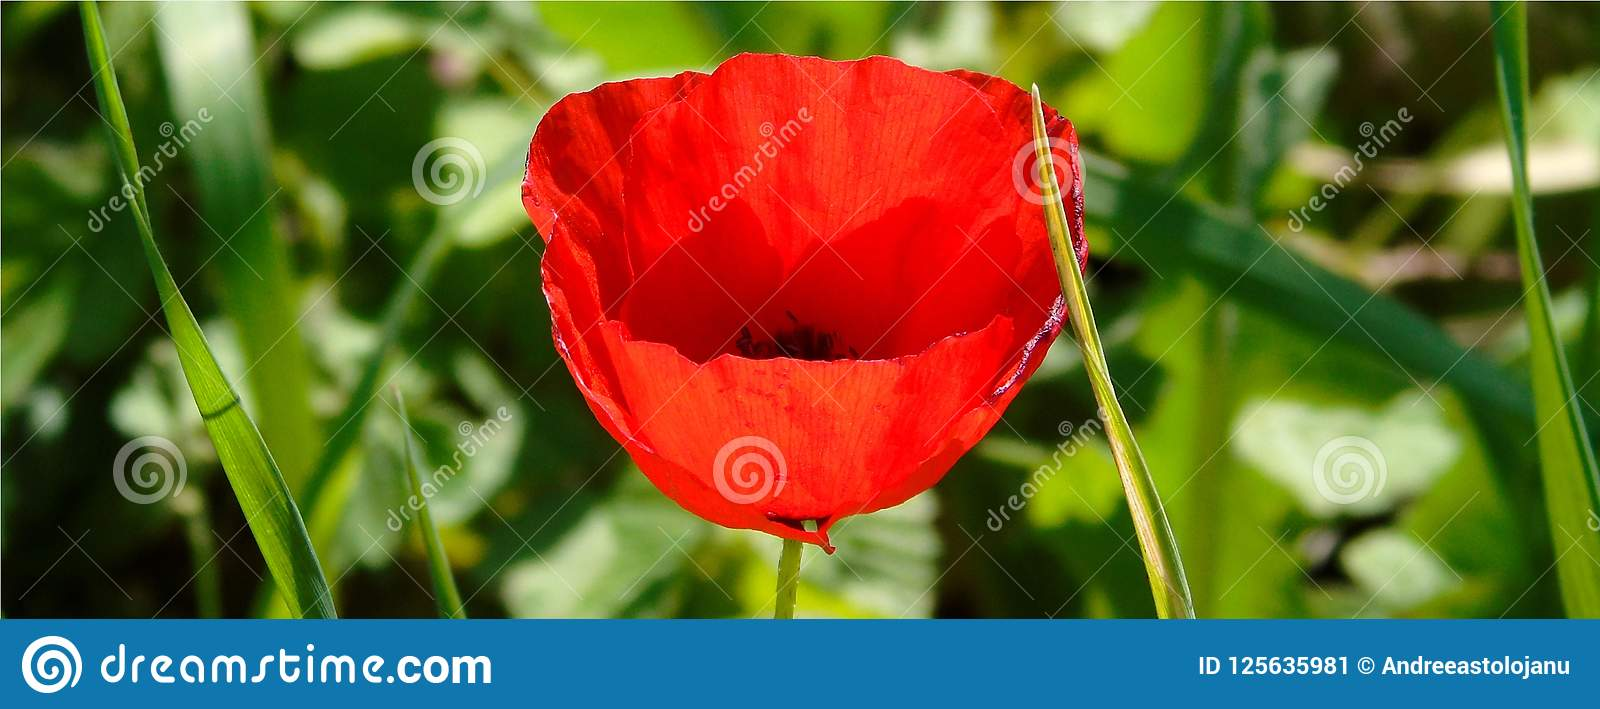 Wallpaper with closeup of red poppy flower on green meadow download wallpaper with closeup of red poppy flower on green meadow background stock image image mightylinksfo